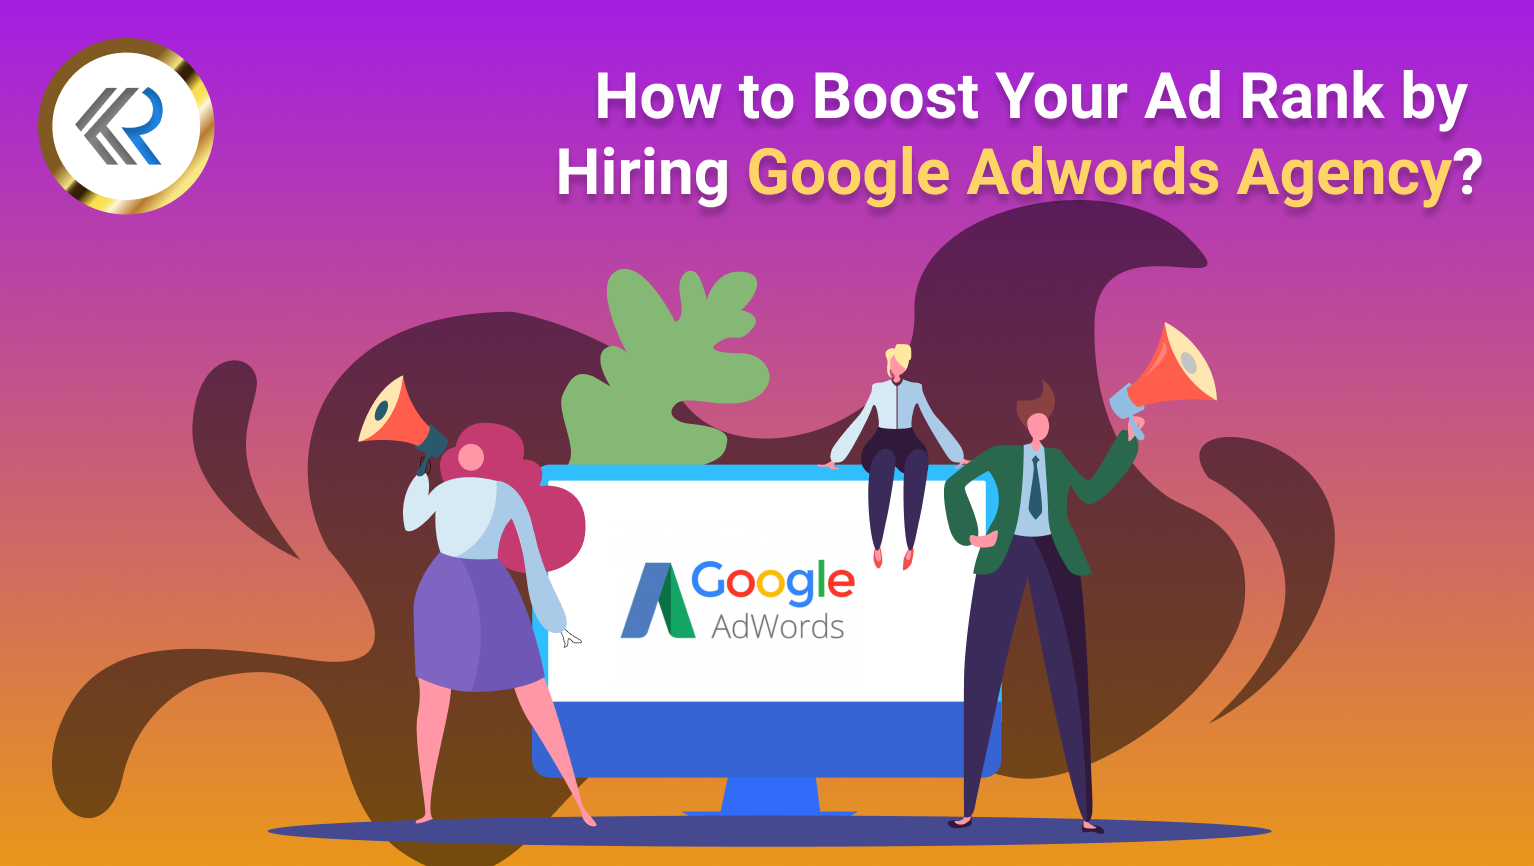 How to Boost AD rank by Hiring Adwords Agency